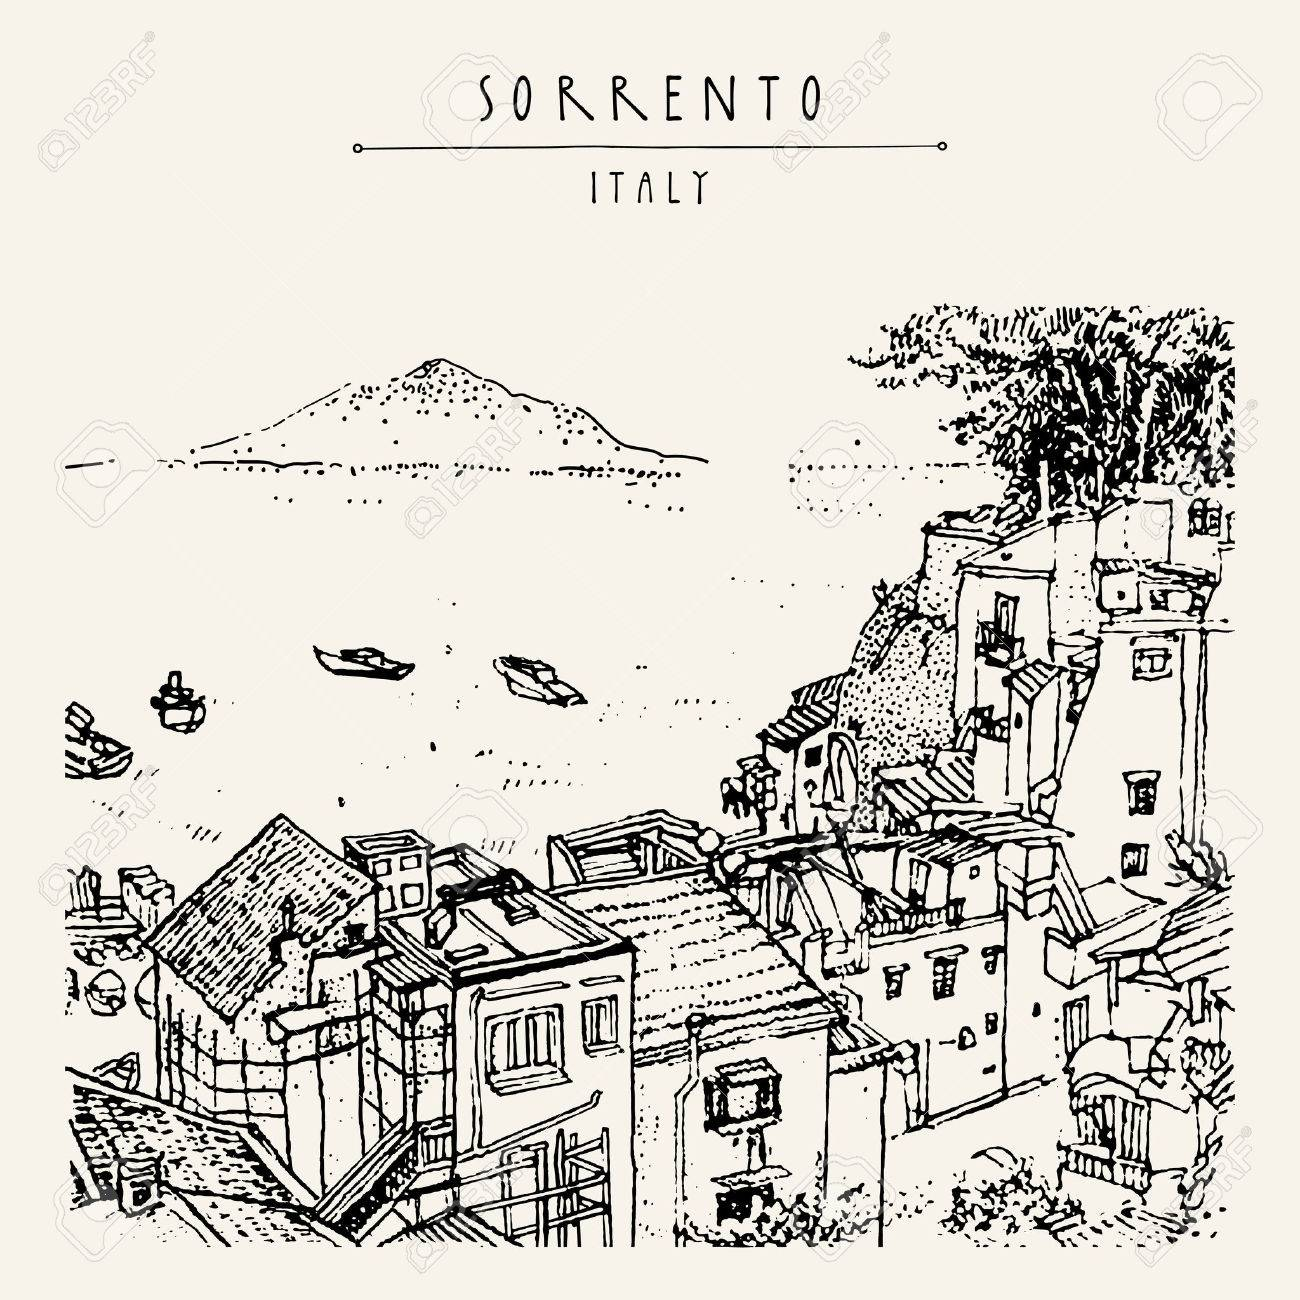 Sorrento, Italy, Europe. Above view. Vesuvio volcano, trees, sea. Sketchy line art. Artistic illustration drawing. Hand lettering. Touristic postcard poster template, book illustration in vector - 58516801